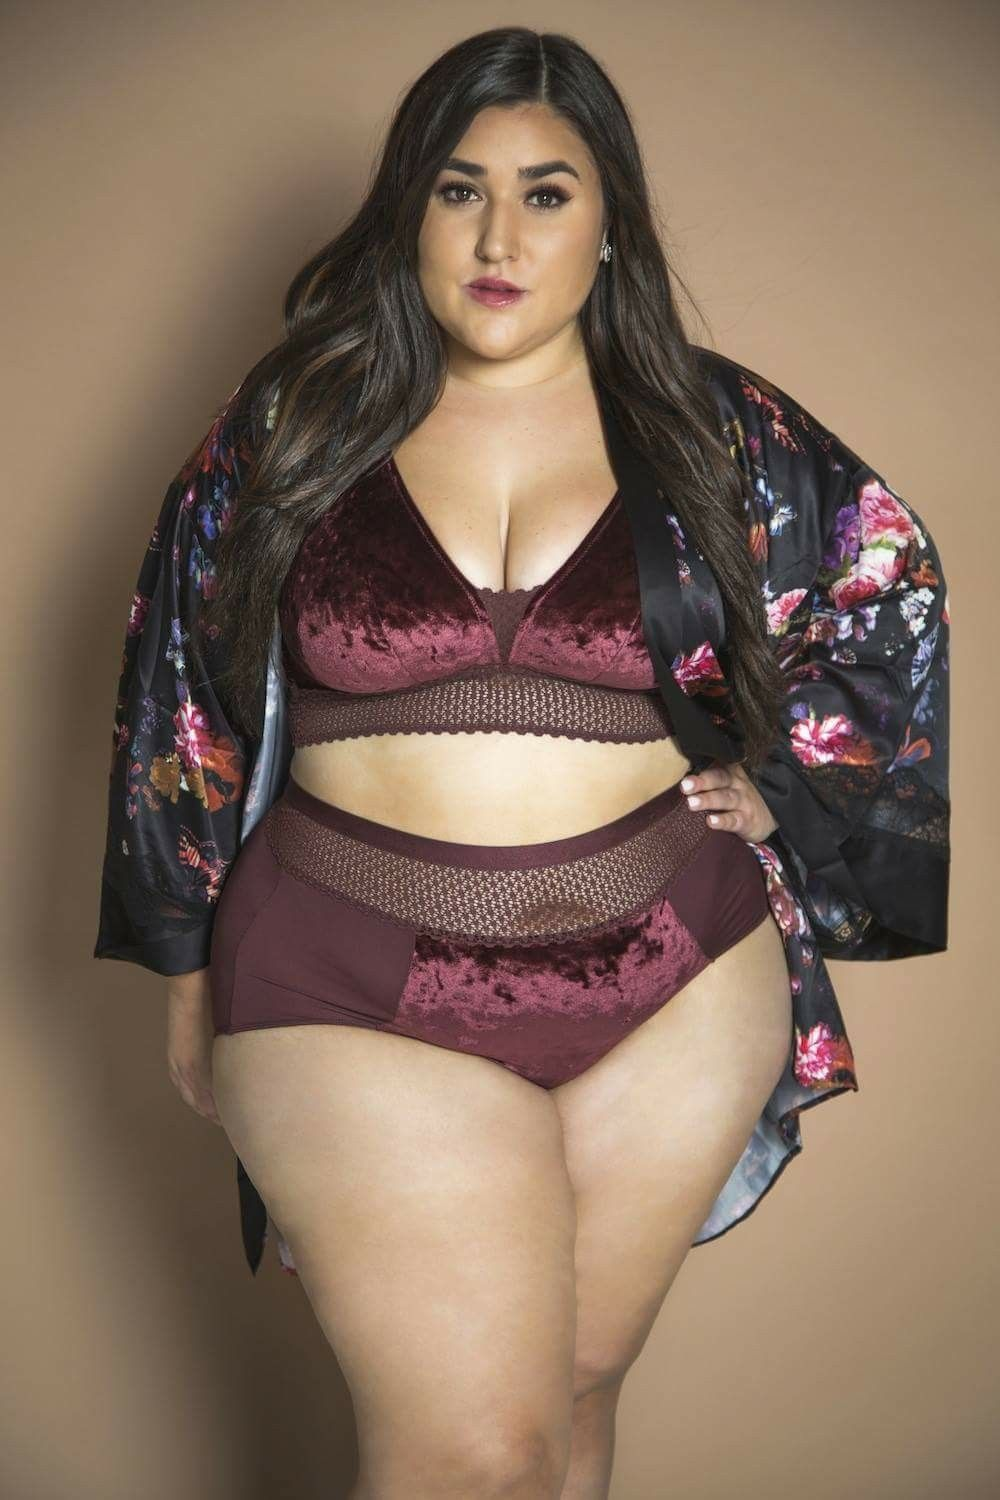 f095eff8fb23 Plus Size Lingerie, Black Lingerie, Plus Size Underwear, Lingerie Dress,  Lingerie Photos